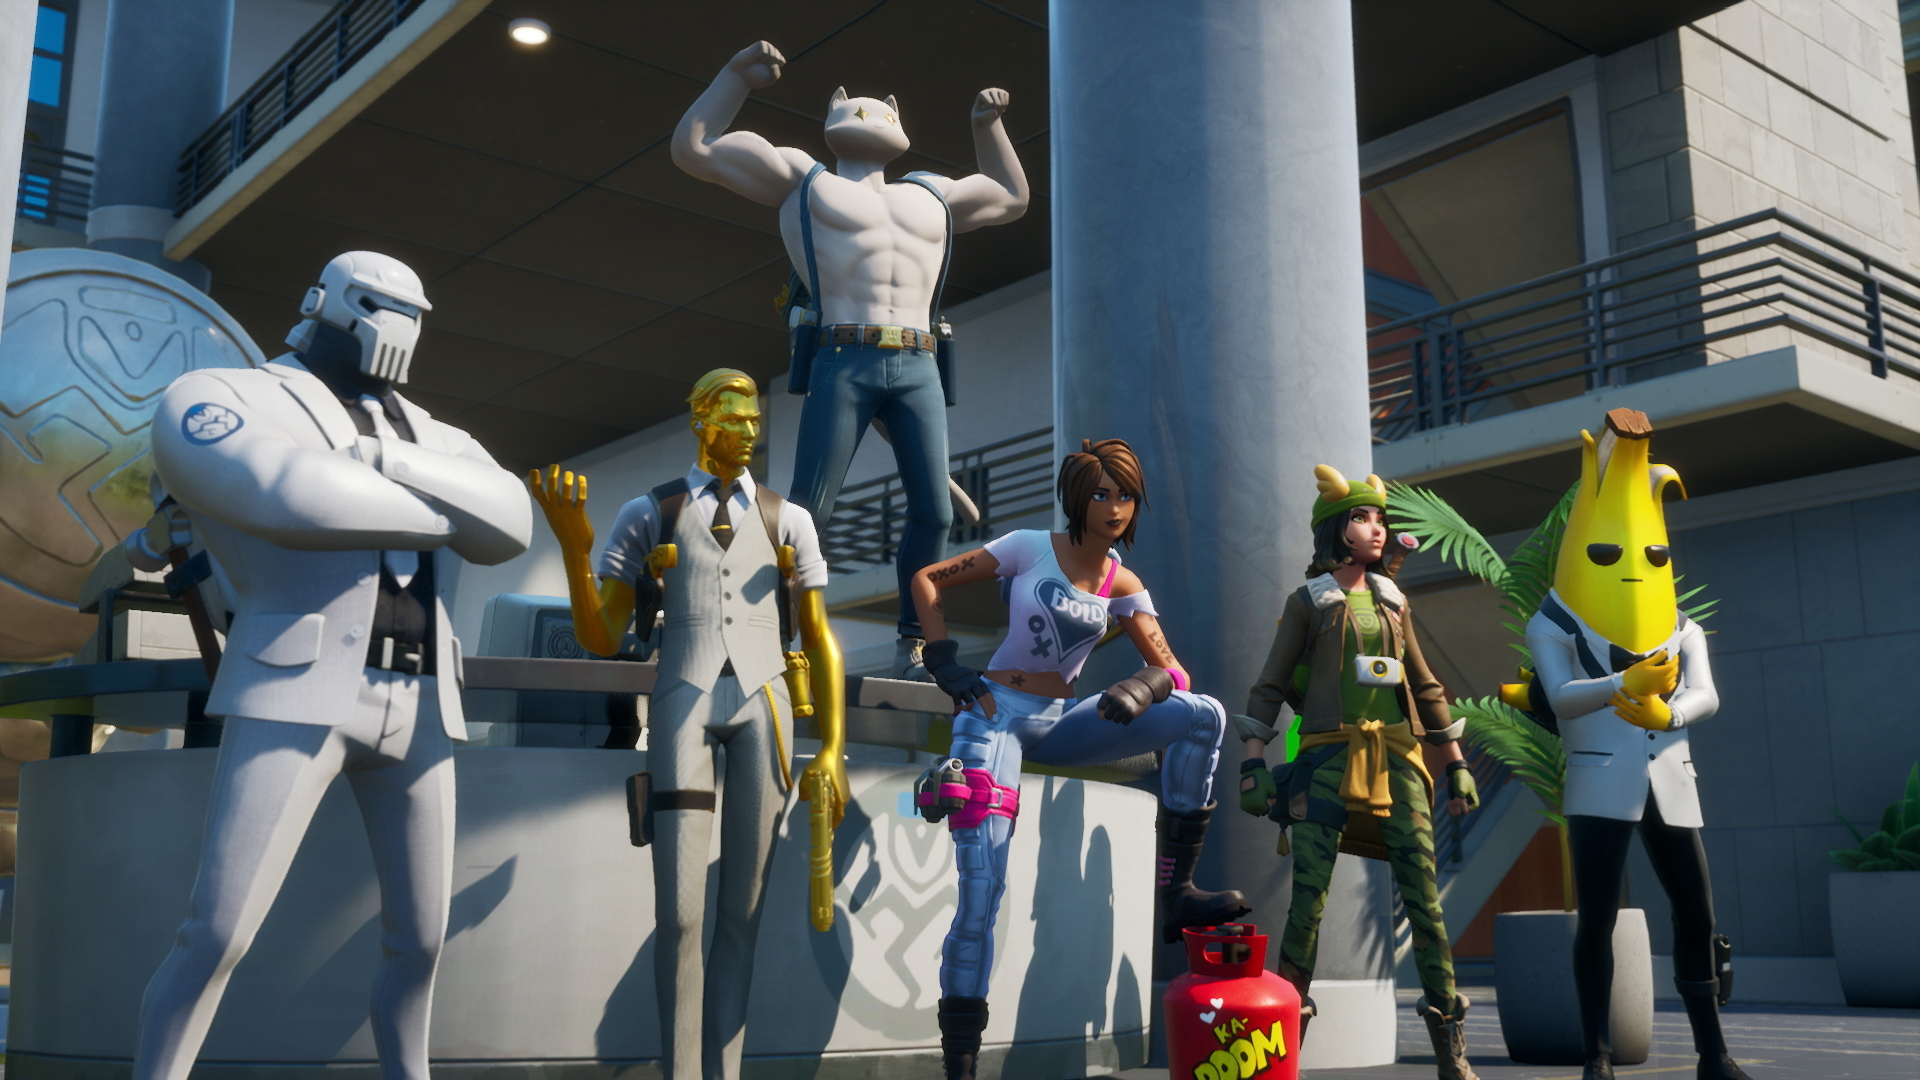 Ps5 And Xbox Series X Just Got Unreal Engine For Next Gen Fortnite Tom S Guide